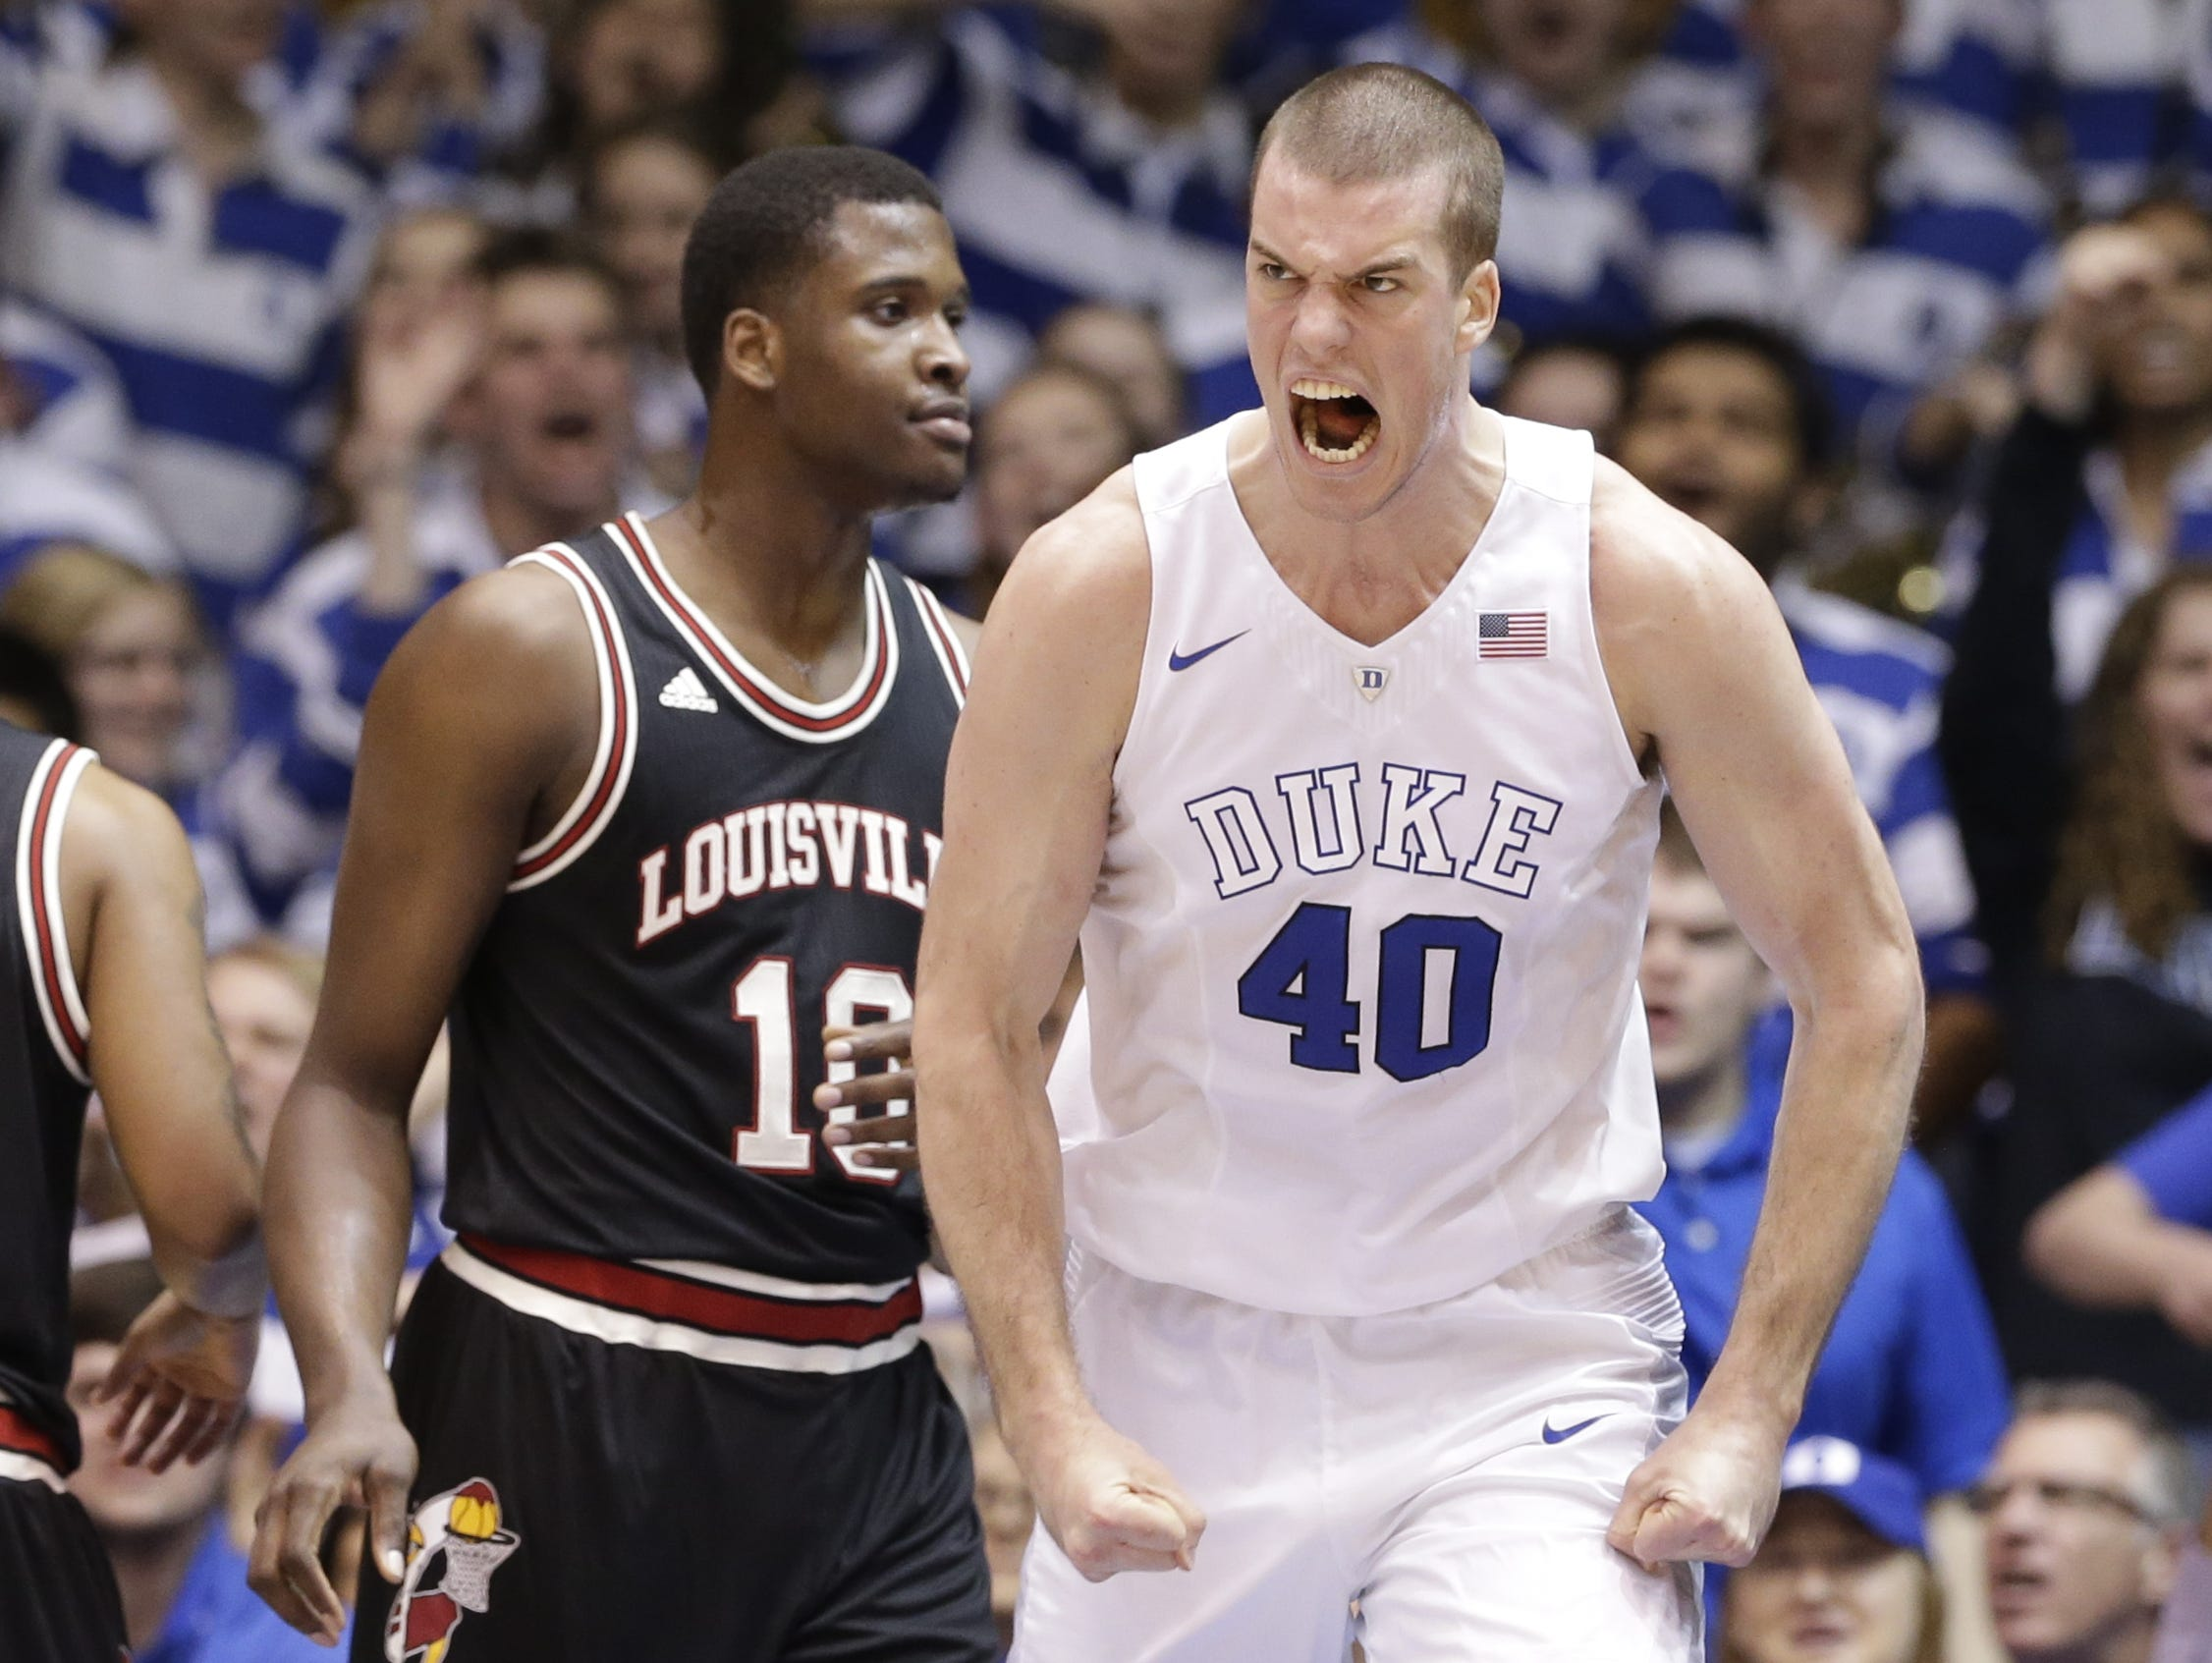 Christ School graduate Marshall Plumlee has signed a three-year contract with the New York Knicks.